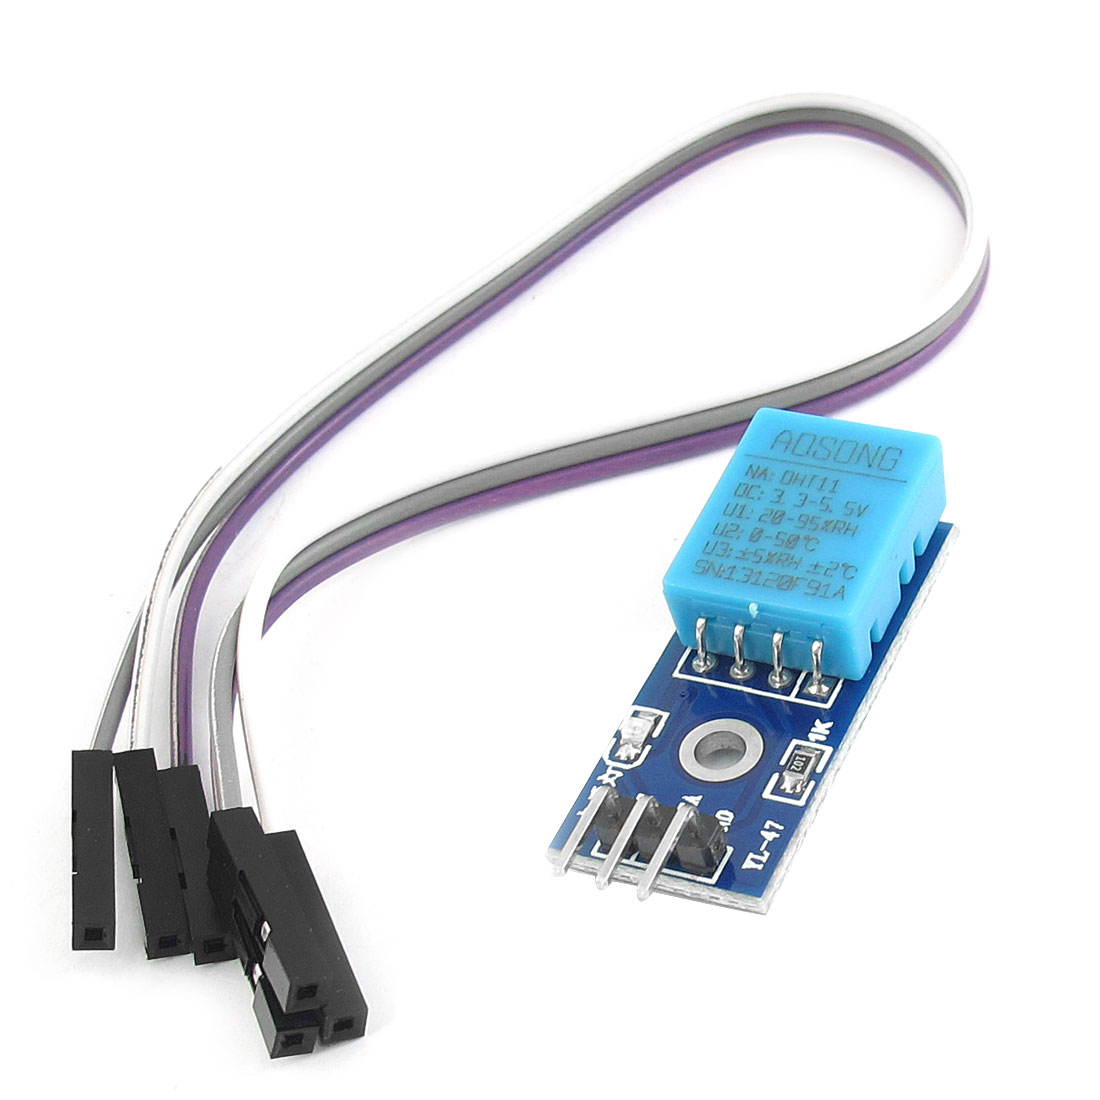 DHT11 Digital Temperature Humidity Sensor Module Board 3 Pin Blue DC 3.3V-5.5V